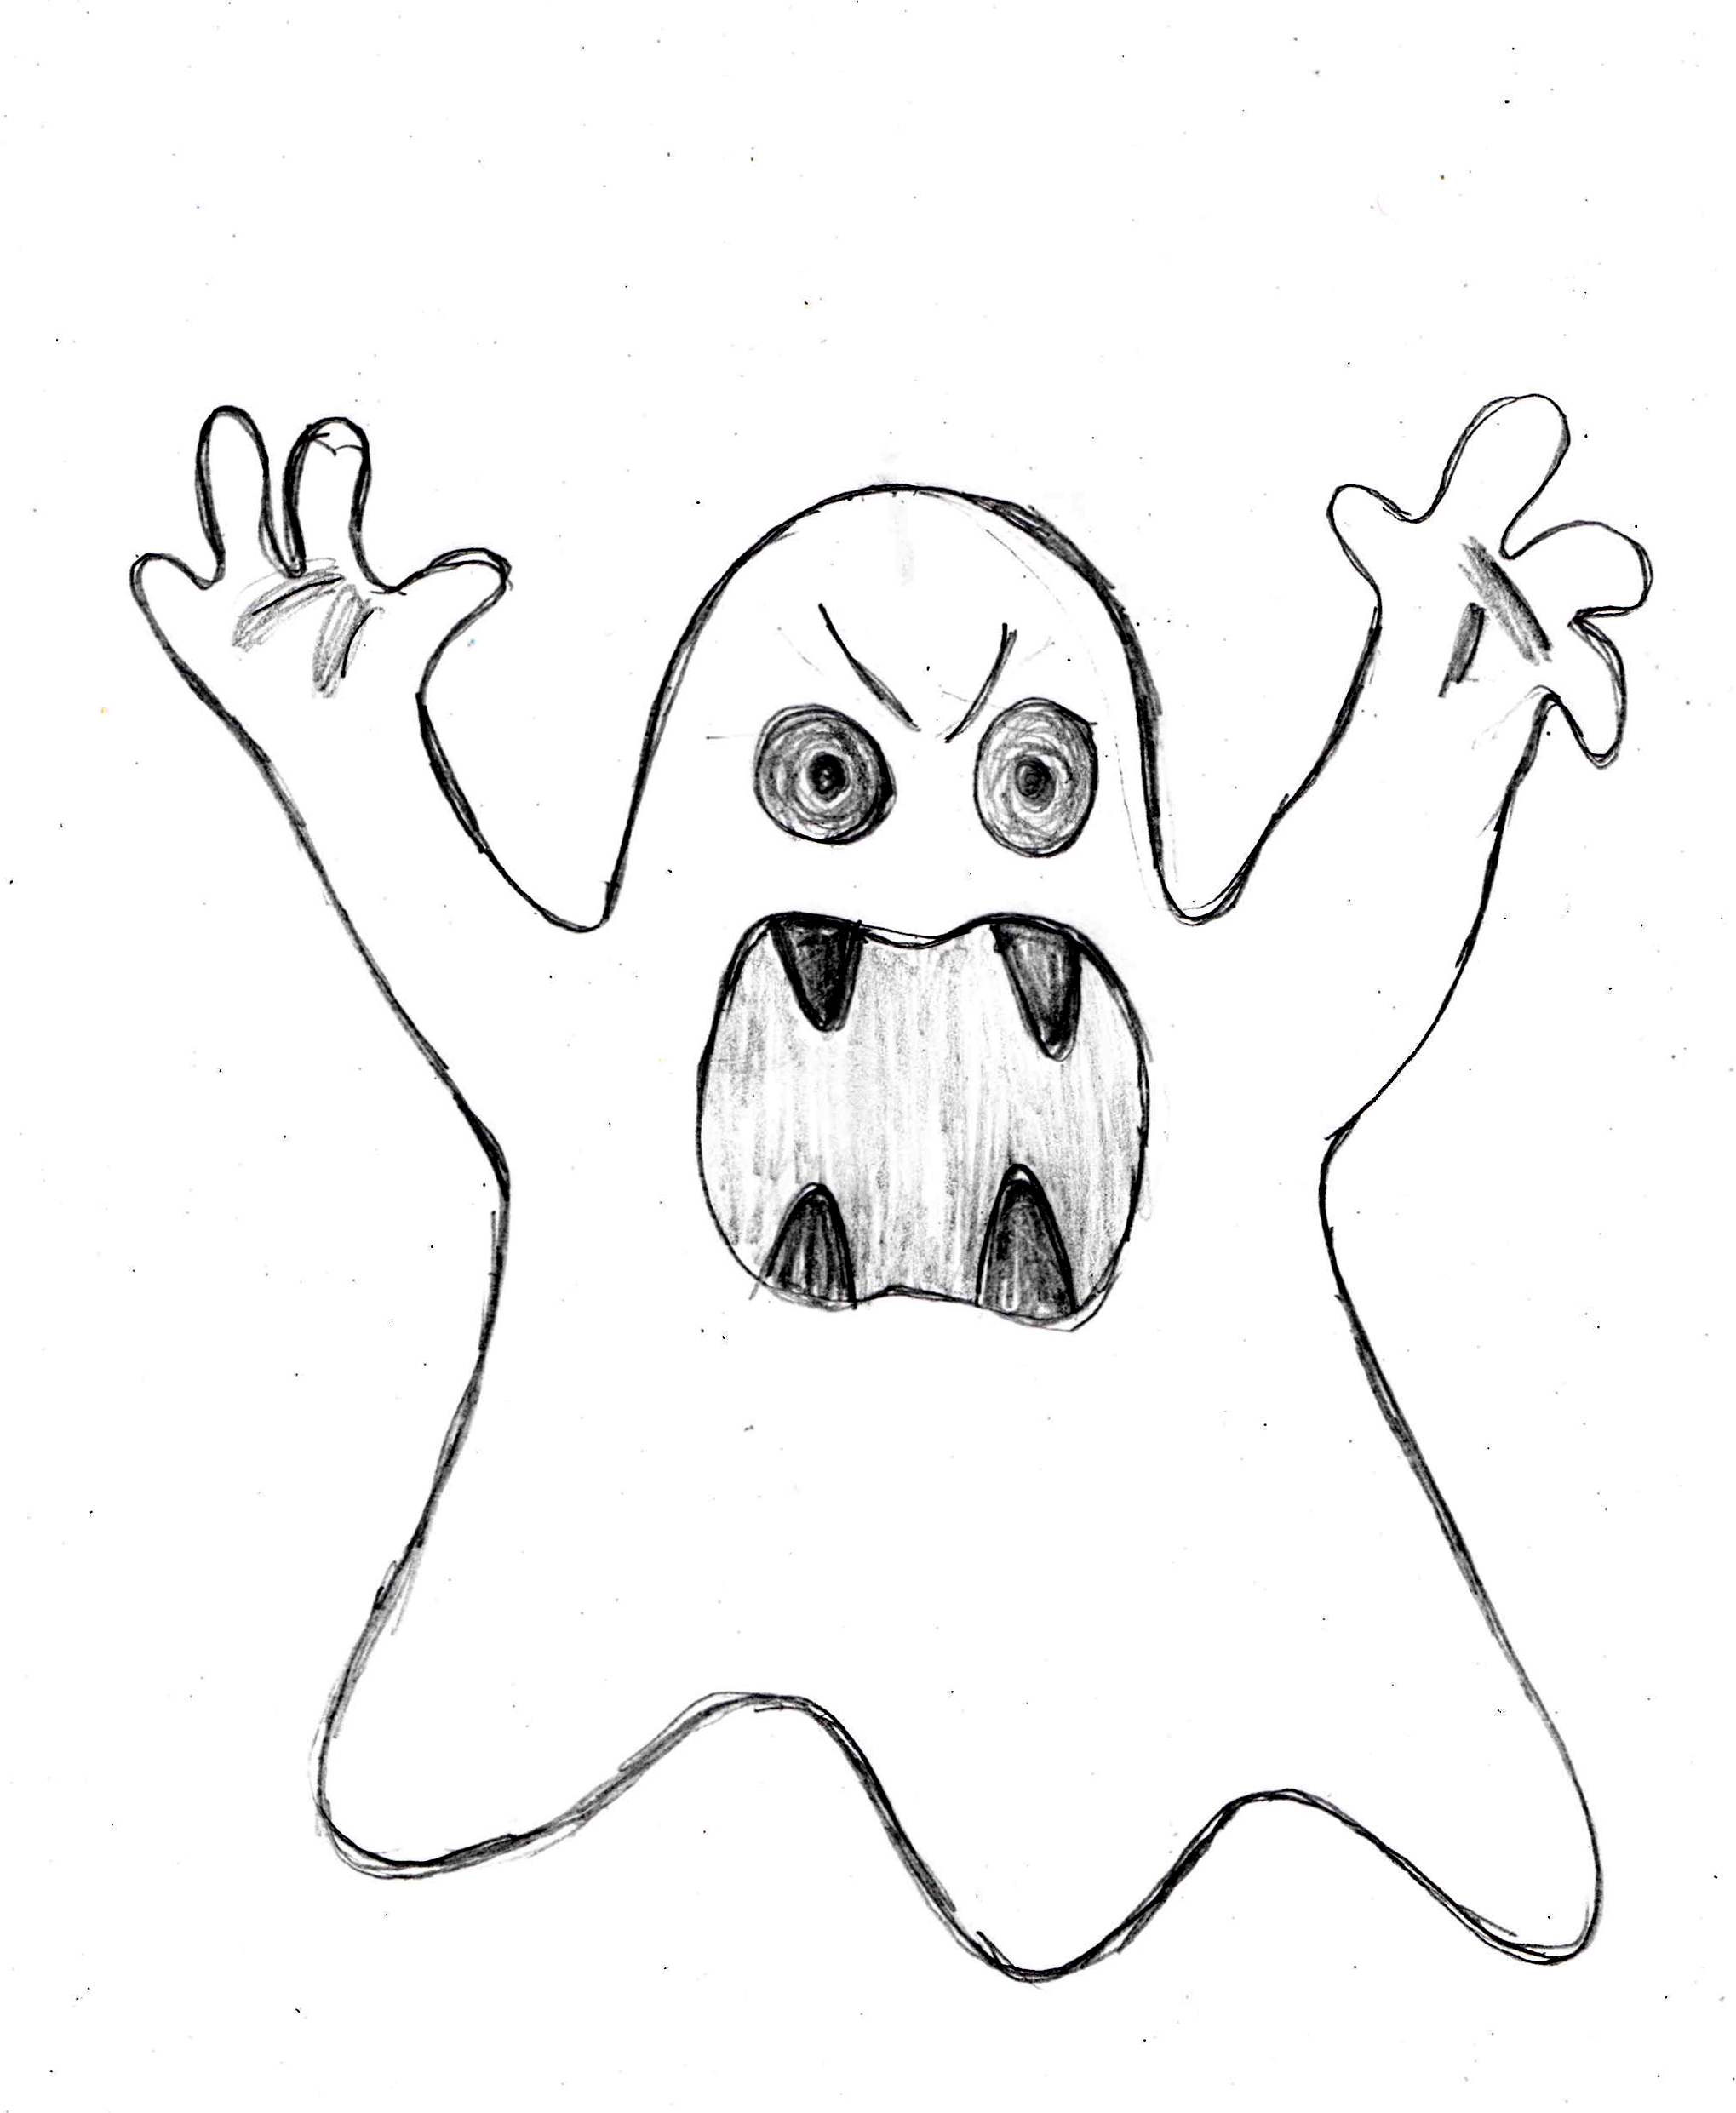 30 Halloween Drawings Artists With Images Halloween